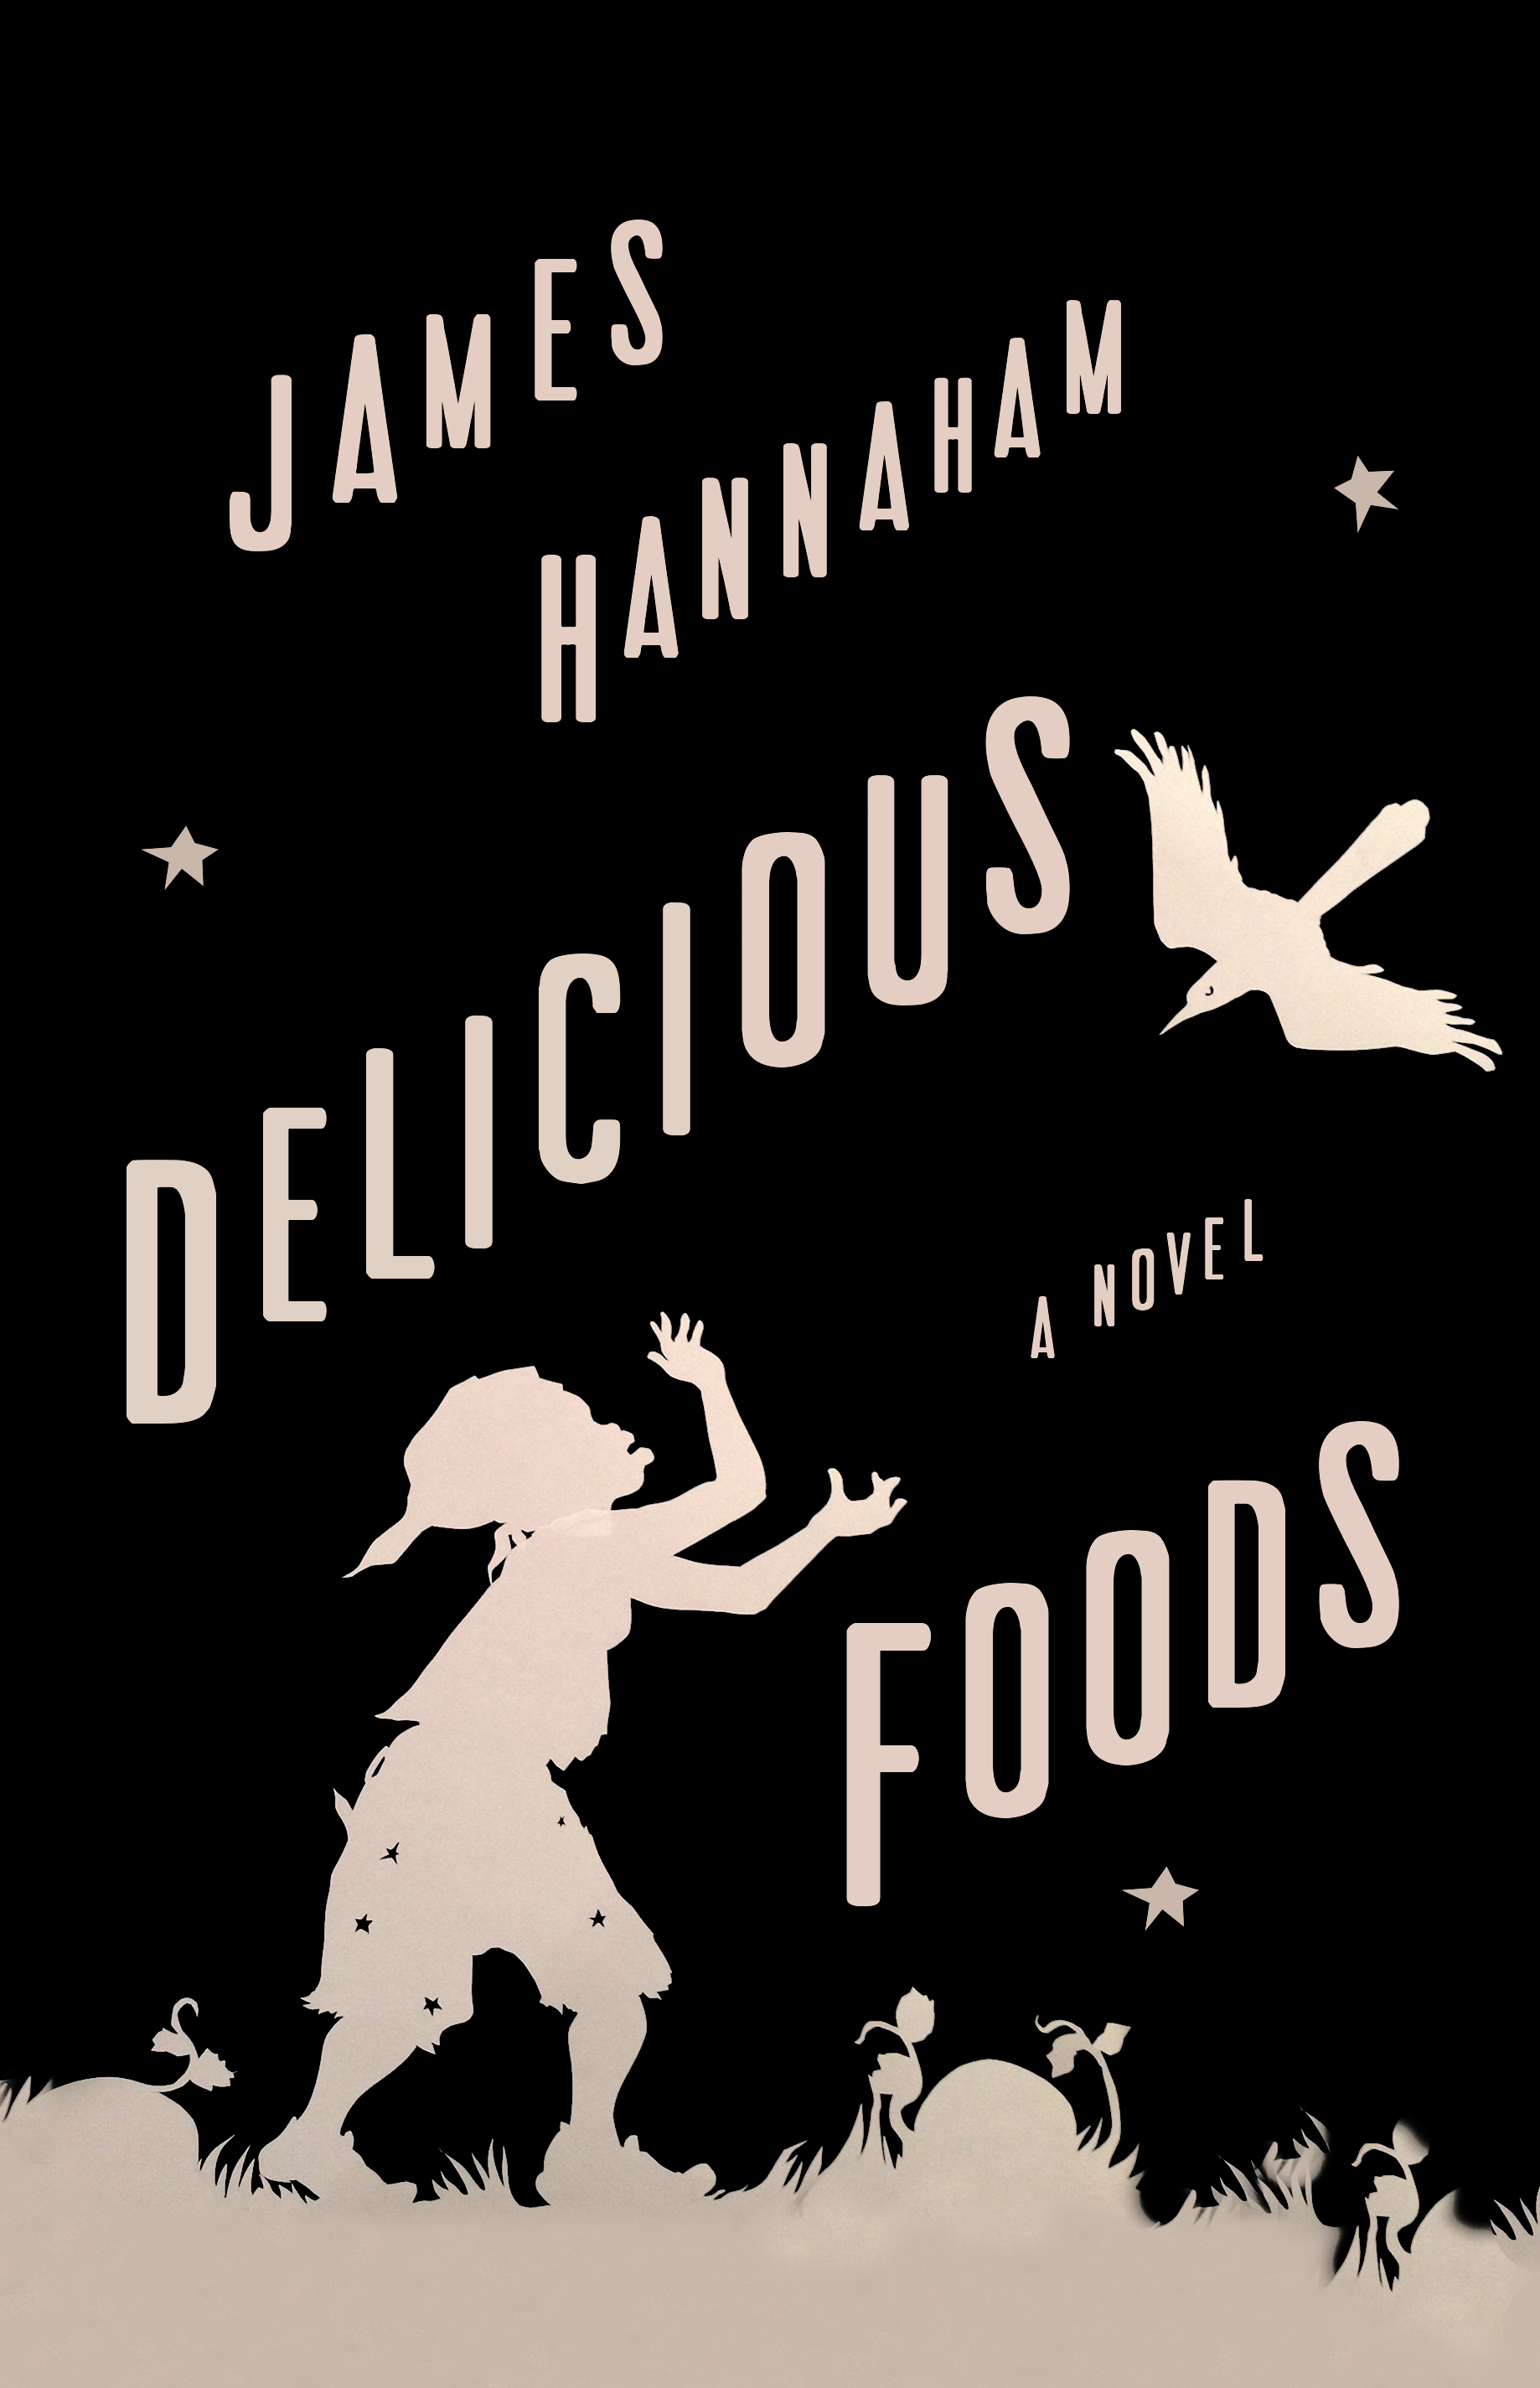 Delicious Foods  by James Hannaham  Winner of the 2016 PEN/Faulkner Award for Fiction and the Hurston/Wright Legacy Fiction Award